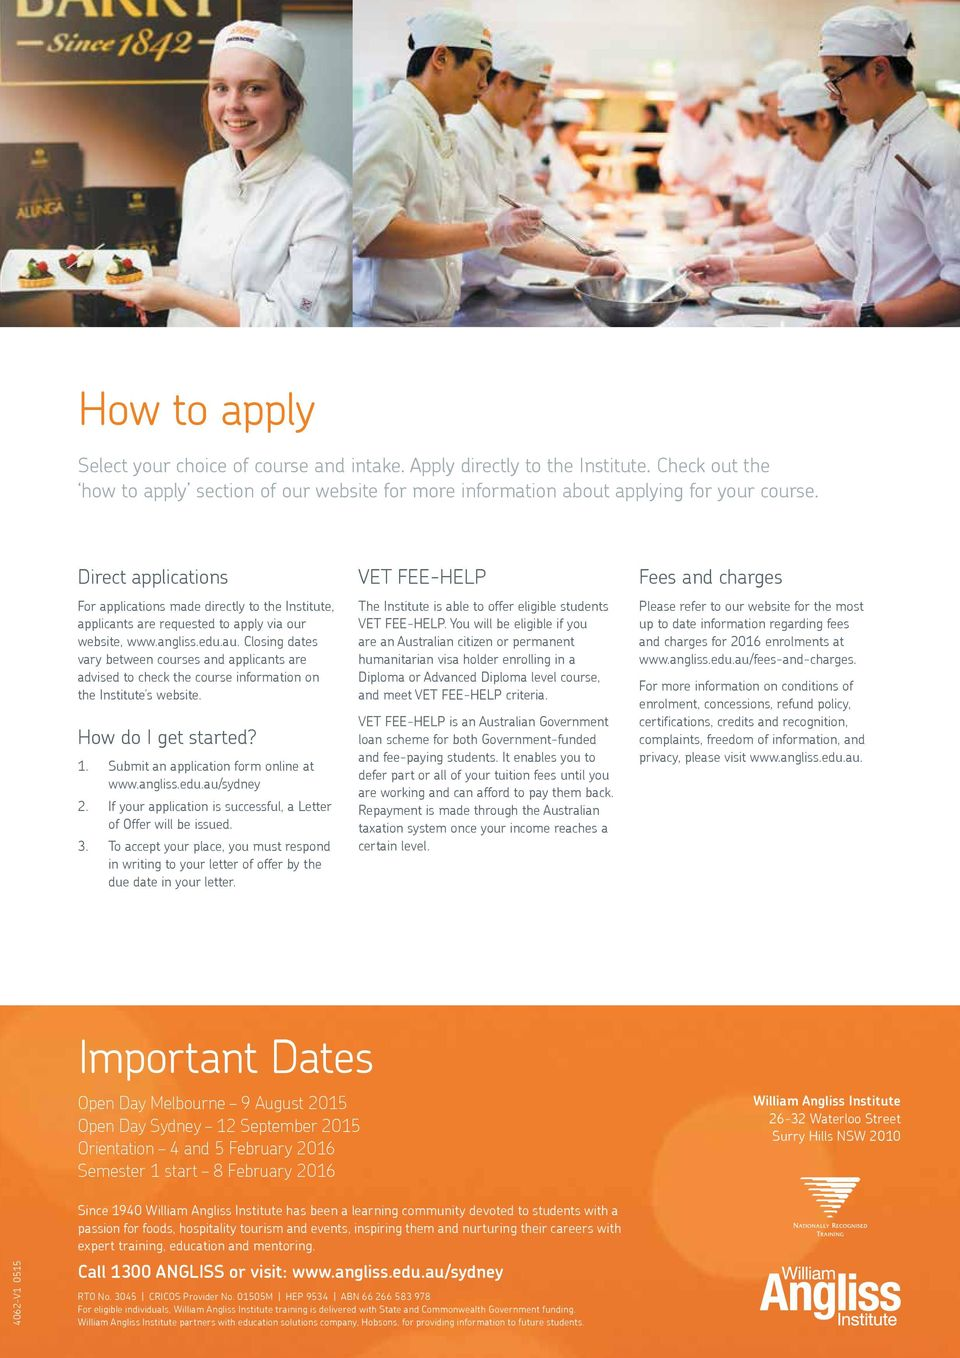 Closing dates vary between courses and applicants are advised to check the course information on the Institute s website. How do I get started? 1. Submit an application form online at www.angliss.edu.